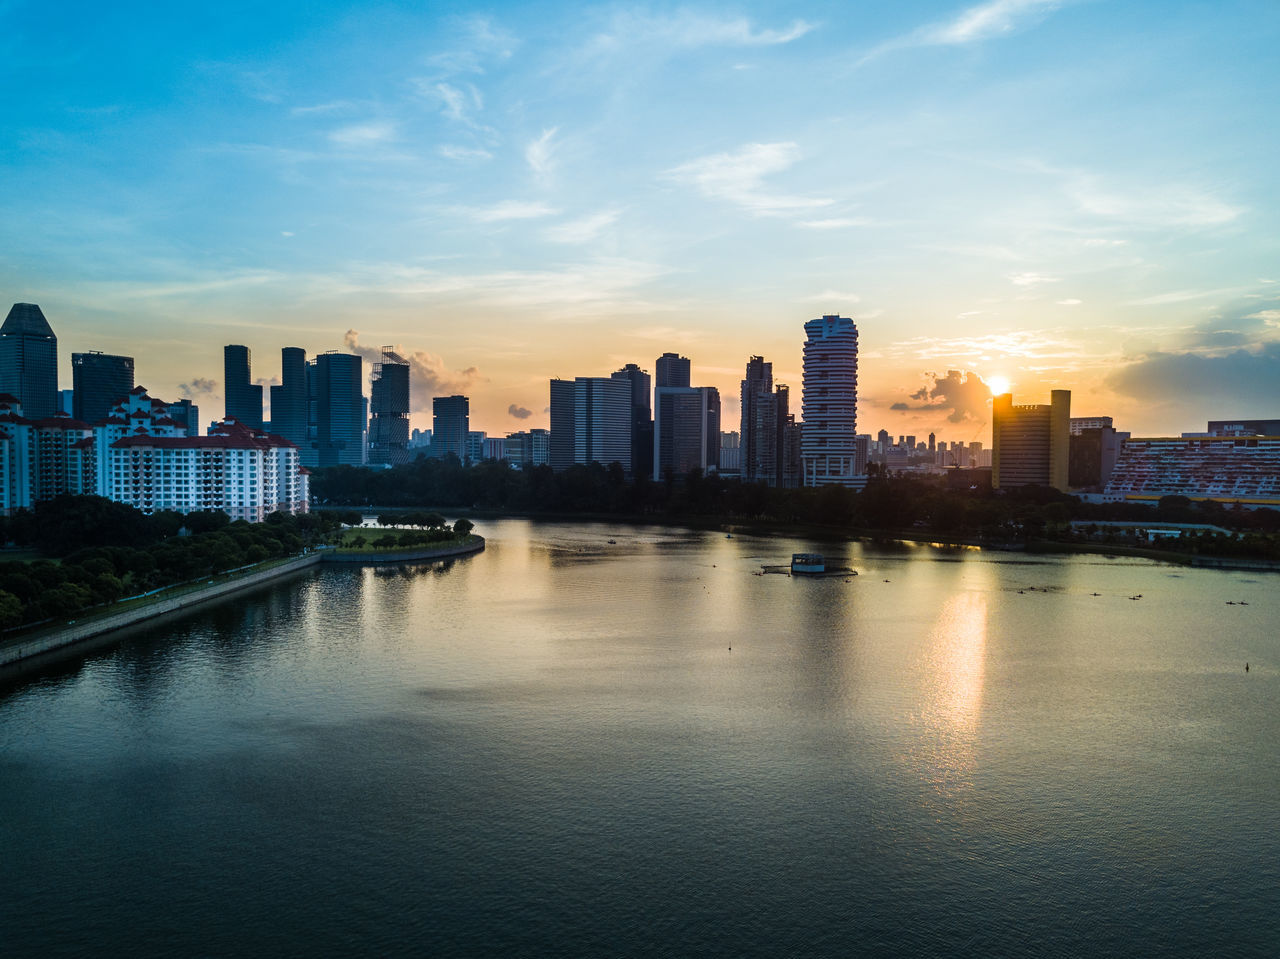 Architecture Building Exterior Built Structure City Cityscape Day Downtown District Drone  Dronephotography Growth Modern No People Outdoors River Singapore Sky Skyline Skyscraper Sunset Tall - High Travel Destinations Urban Skyline Water Waterfront